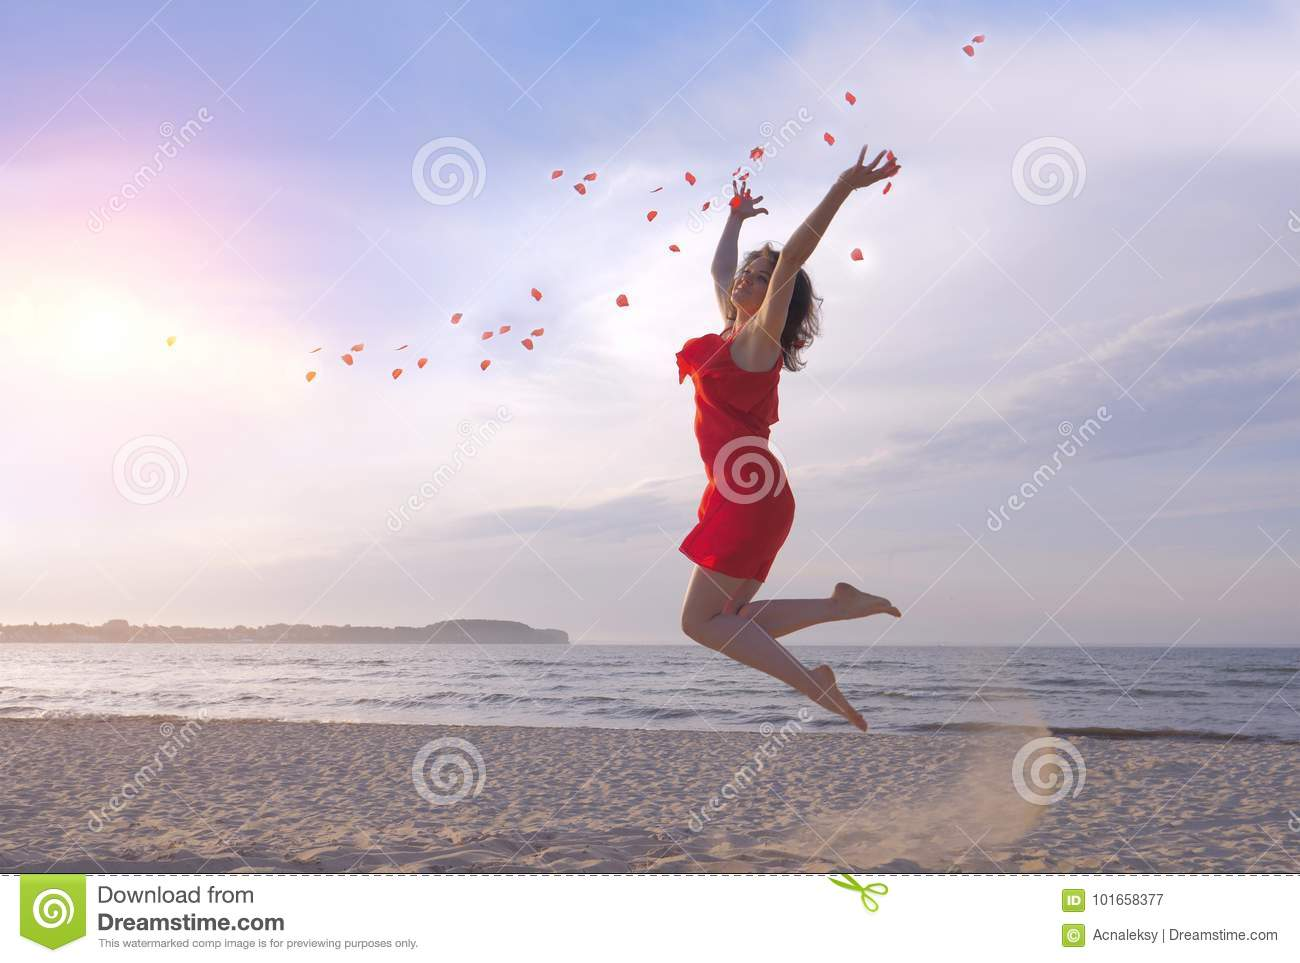 Jumping beautiful woman in red dress throwing rose petals on beach.